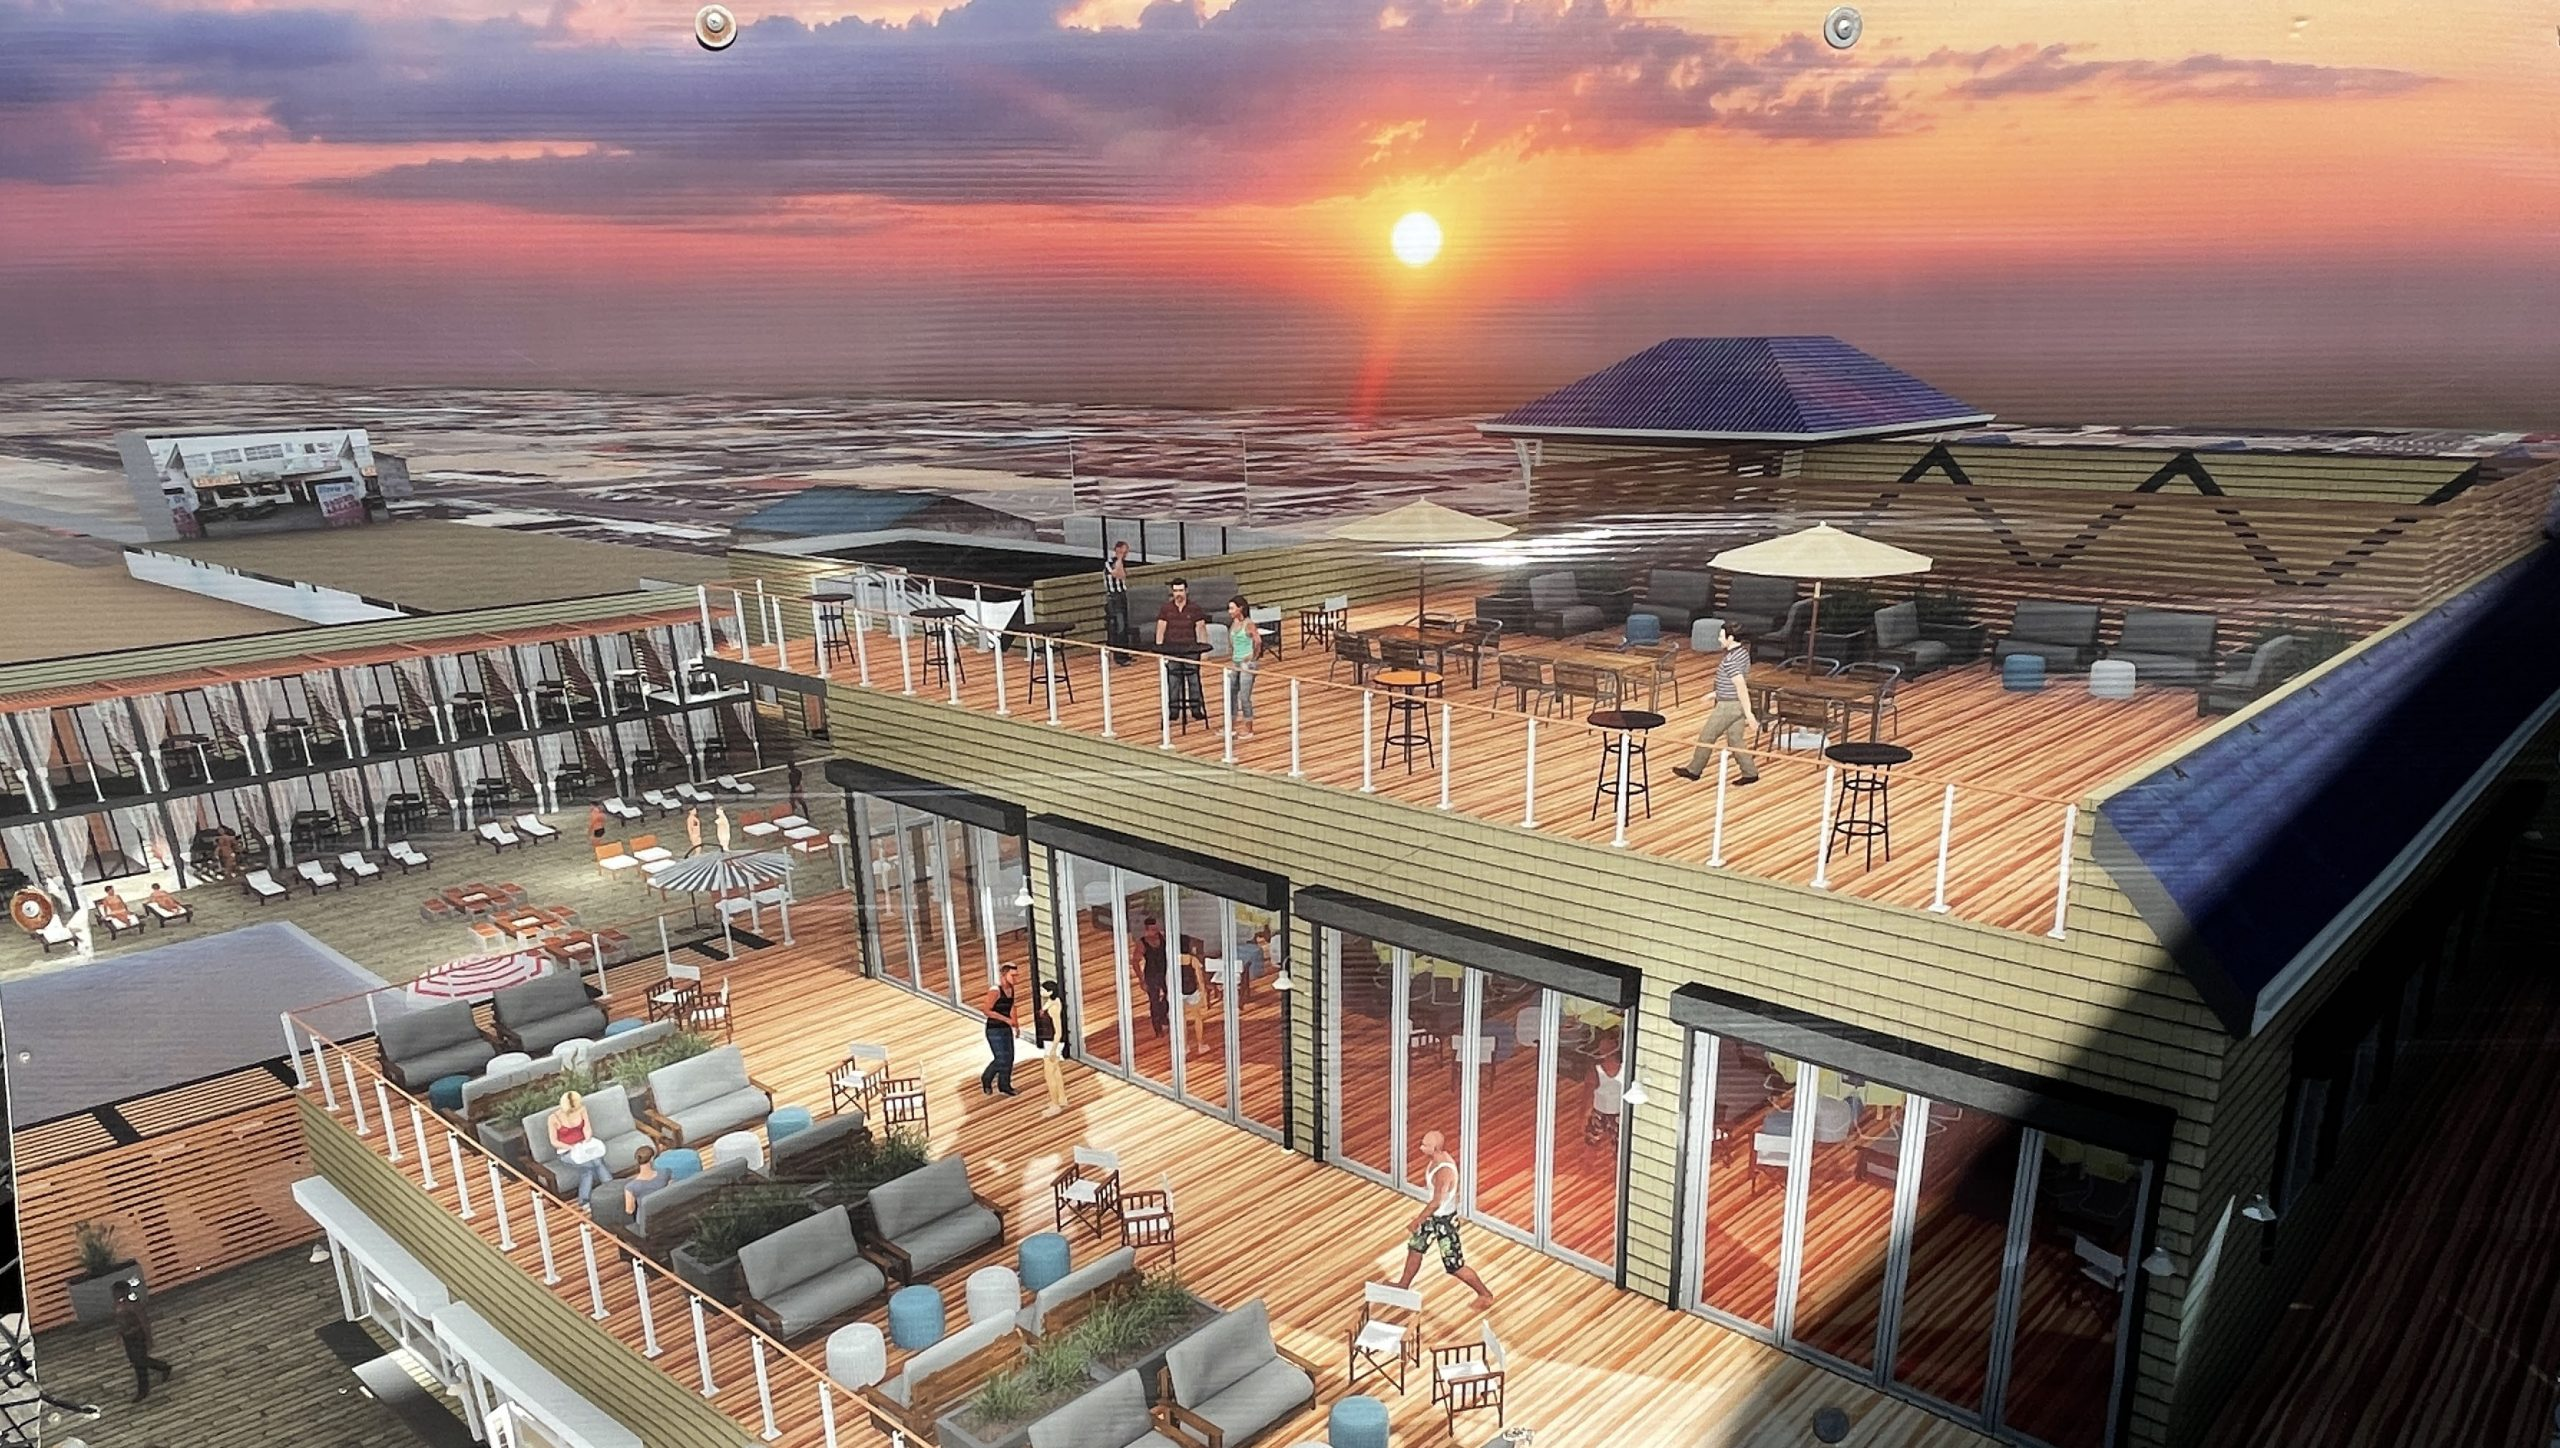 A rendering of a potential final layout of the Dupont Avenue Pier in Seaside Heights. (Photo: Daniel Nee)